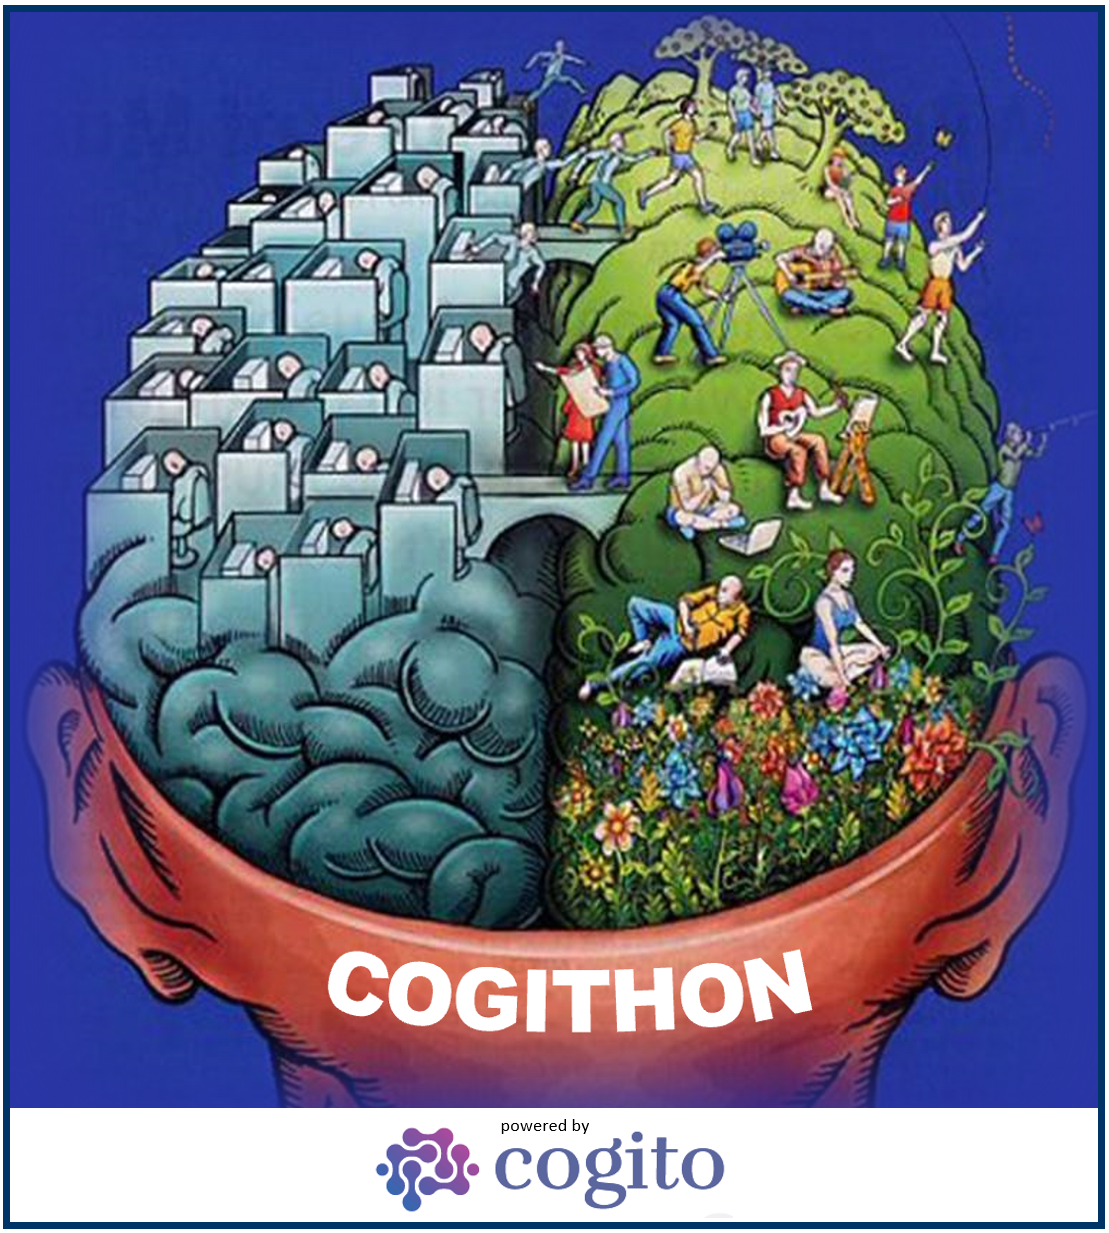 COGITHON mood picture - Drawing of the brain with these two hemispheres to symbolize creativity and rationality.